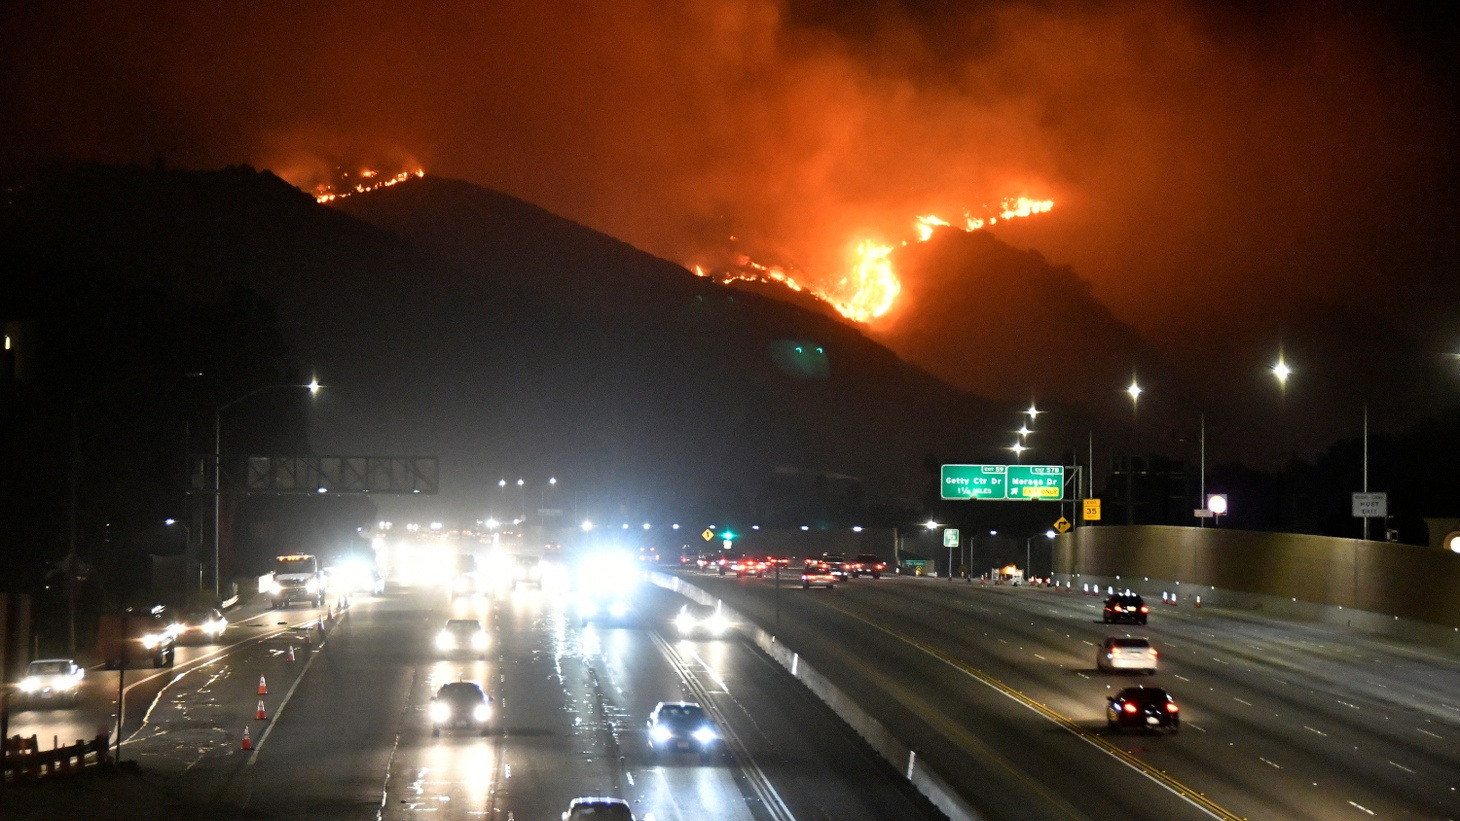 The Getty Fire burns next to the 405 freeway in the hills of West Los Angeles, California, U.S. October 28, 2019.